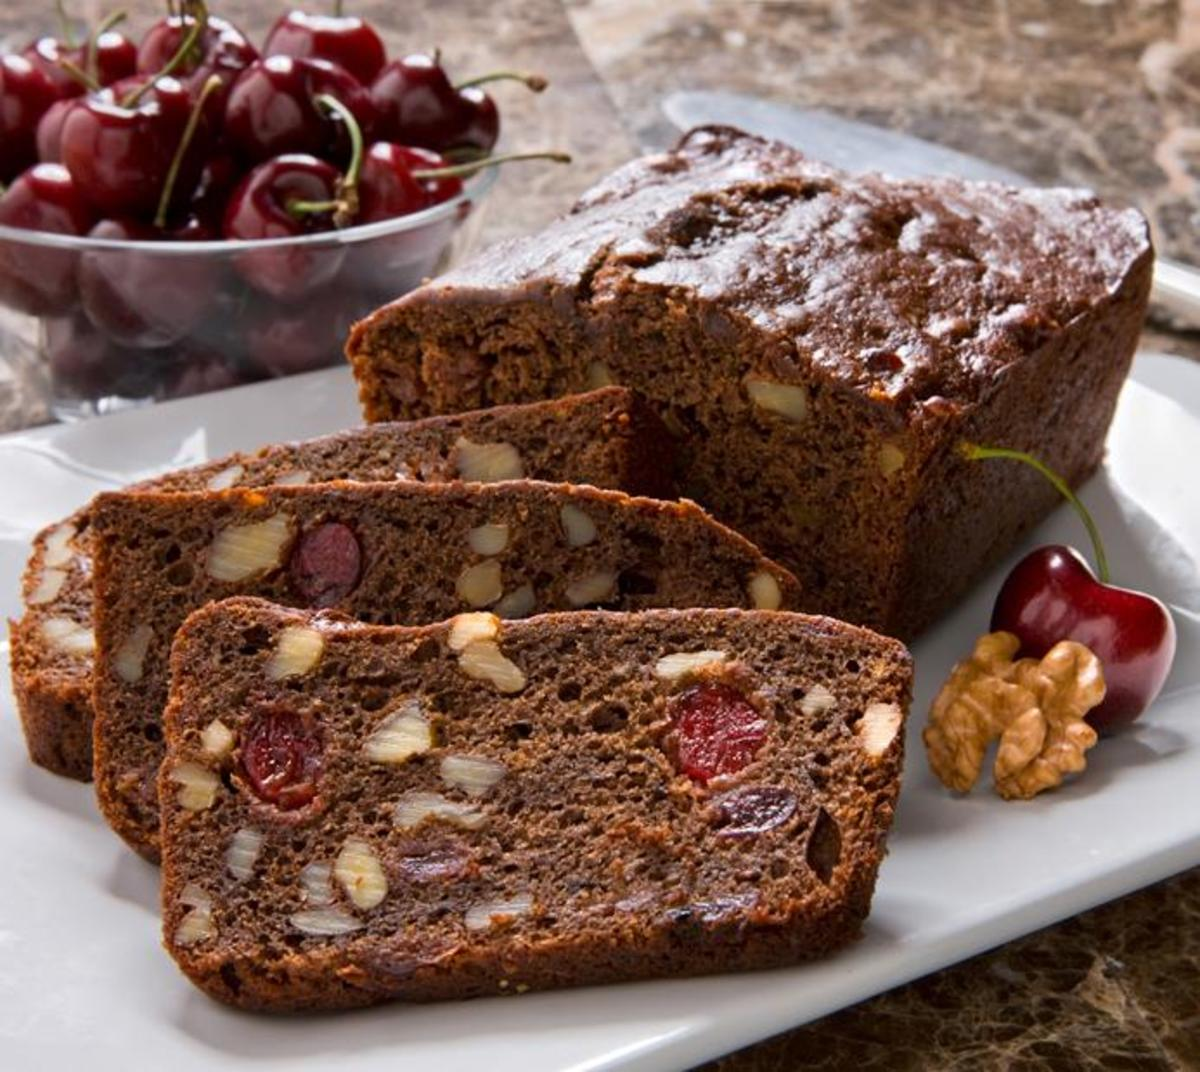 Cherry Walnut Chocolate Bread